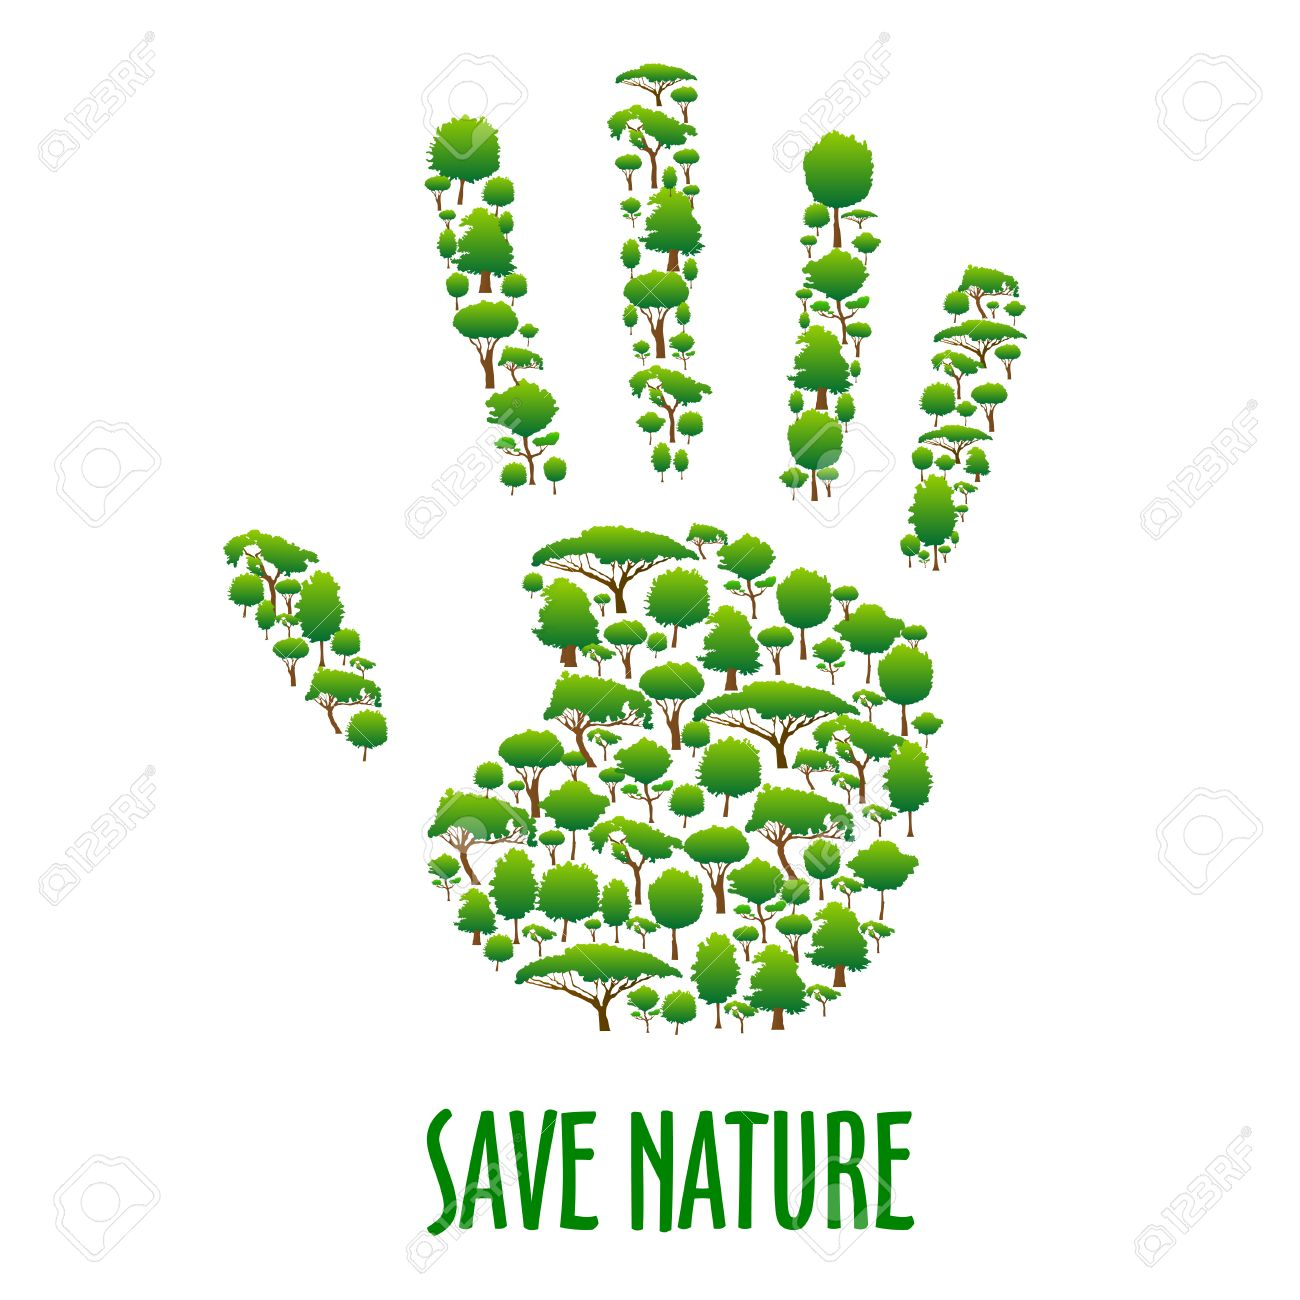 Save Nature Green Environment Protection Poster Green Eco Hand